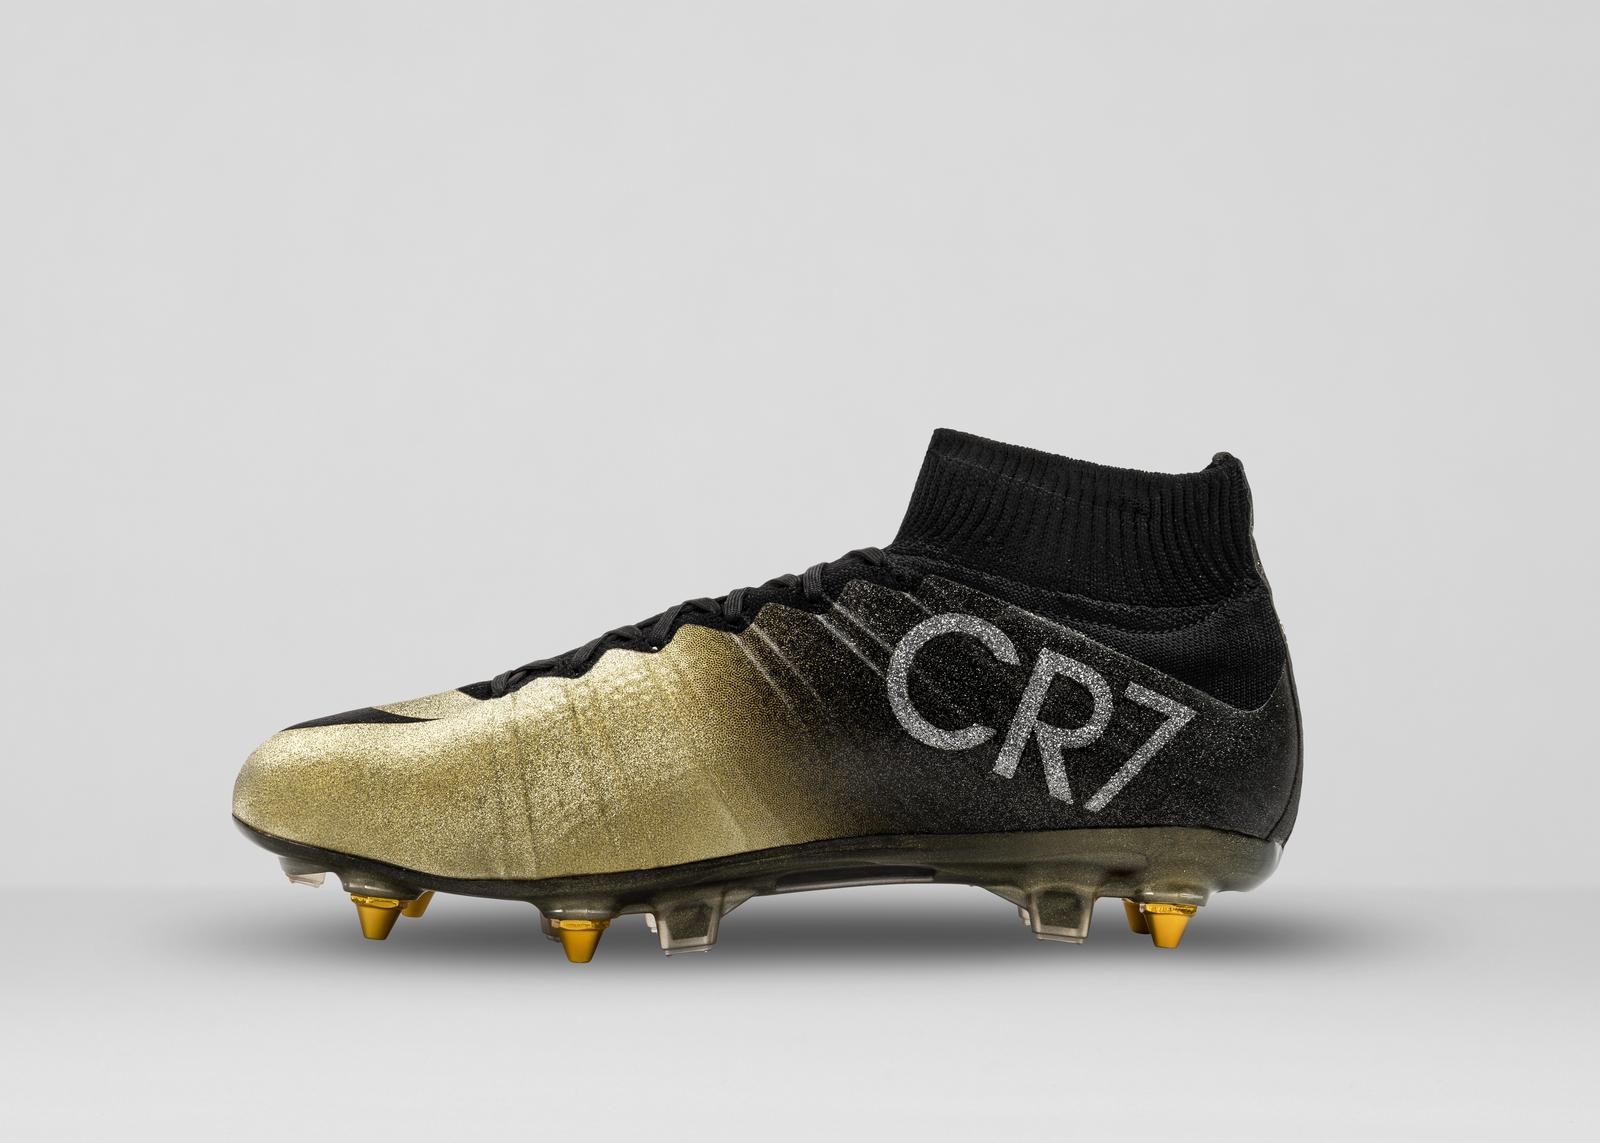 9b1f098bd16 chaussures de cristiano ronaldo mercurial2 - Football sports - le ...